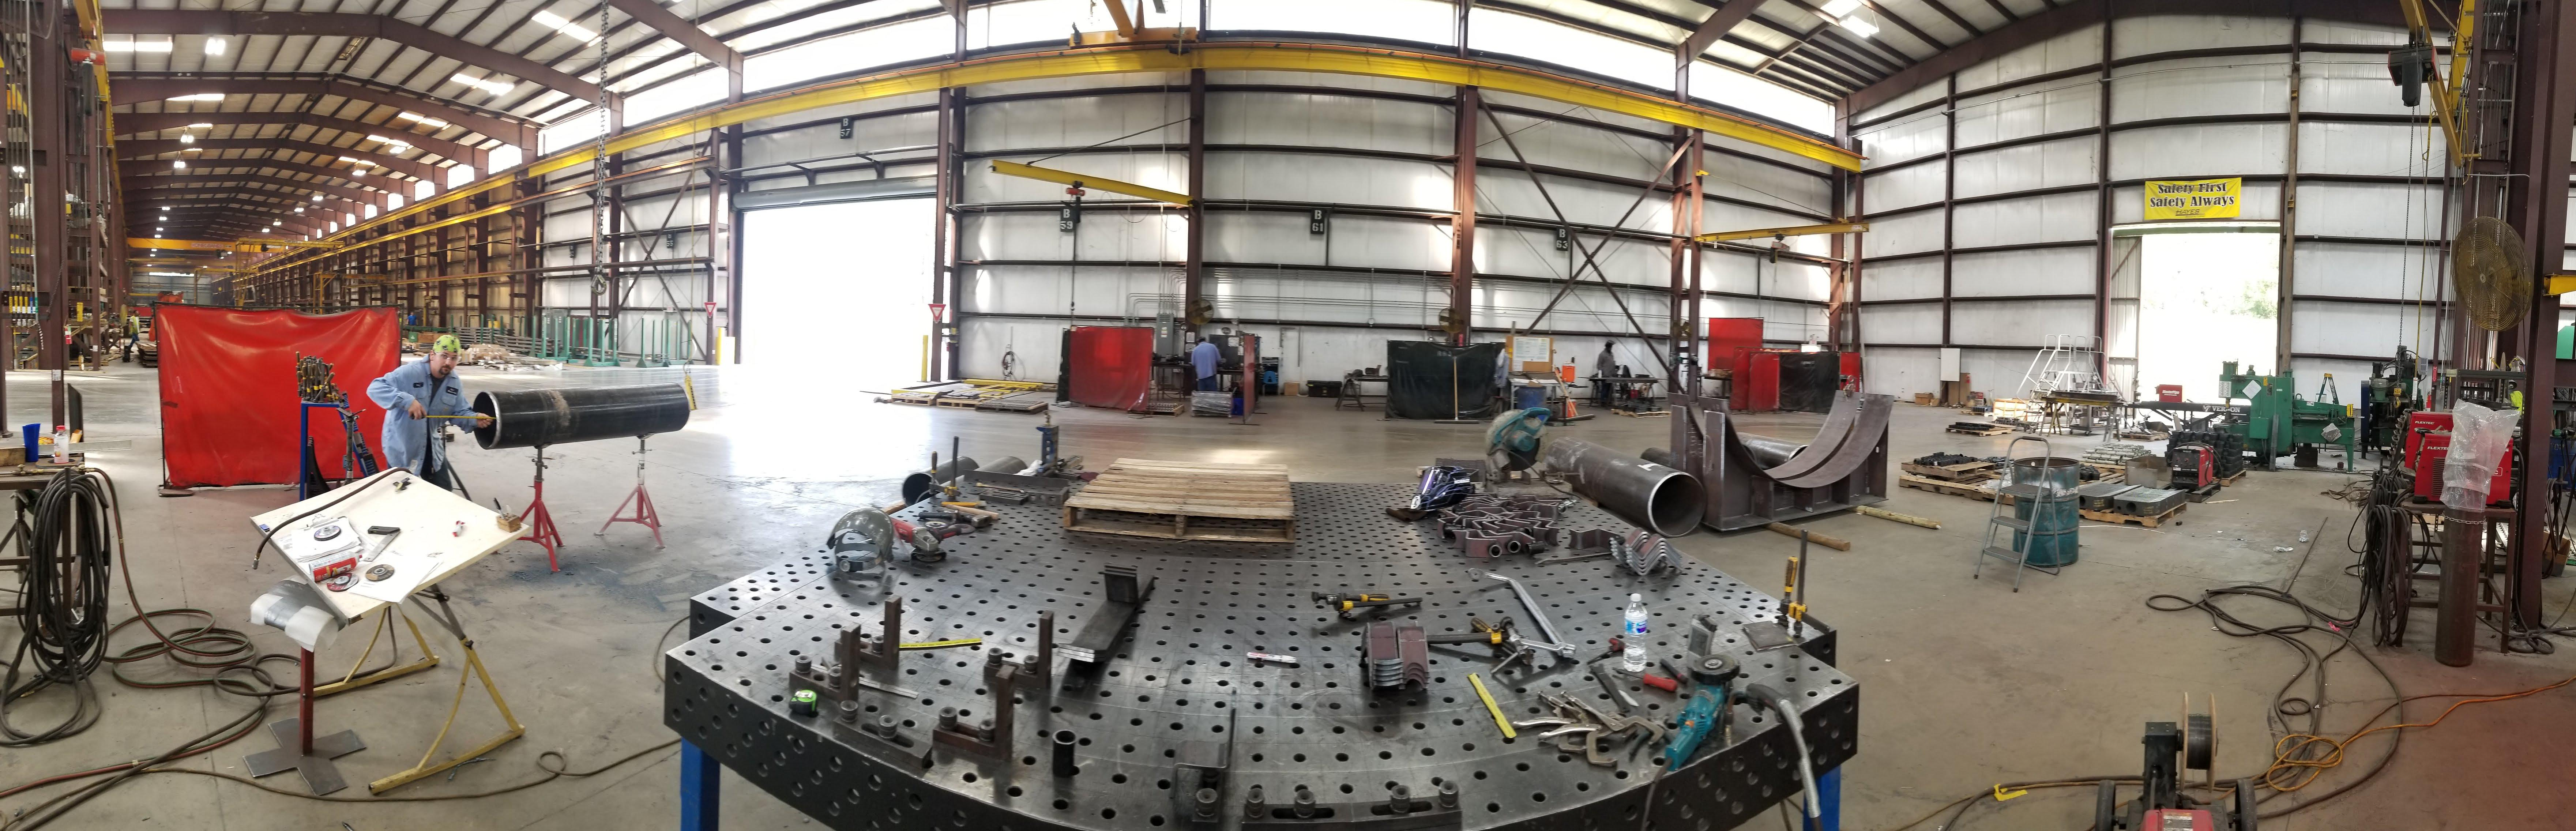 Facility, Hayes Manufacturing, Pineville, Louisiana, Metal-Working Equipment, Highest Quality Products, CNC Plasma Cutting, Machining, Blasting, Painting